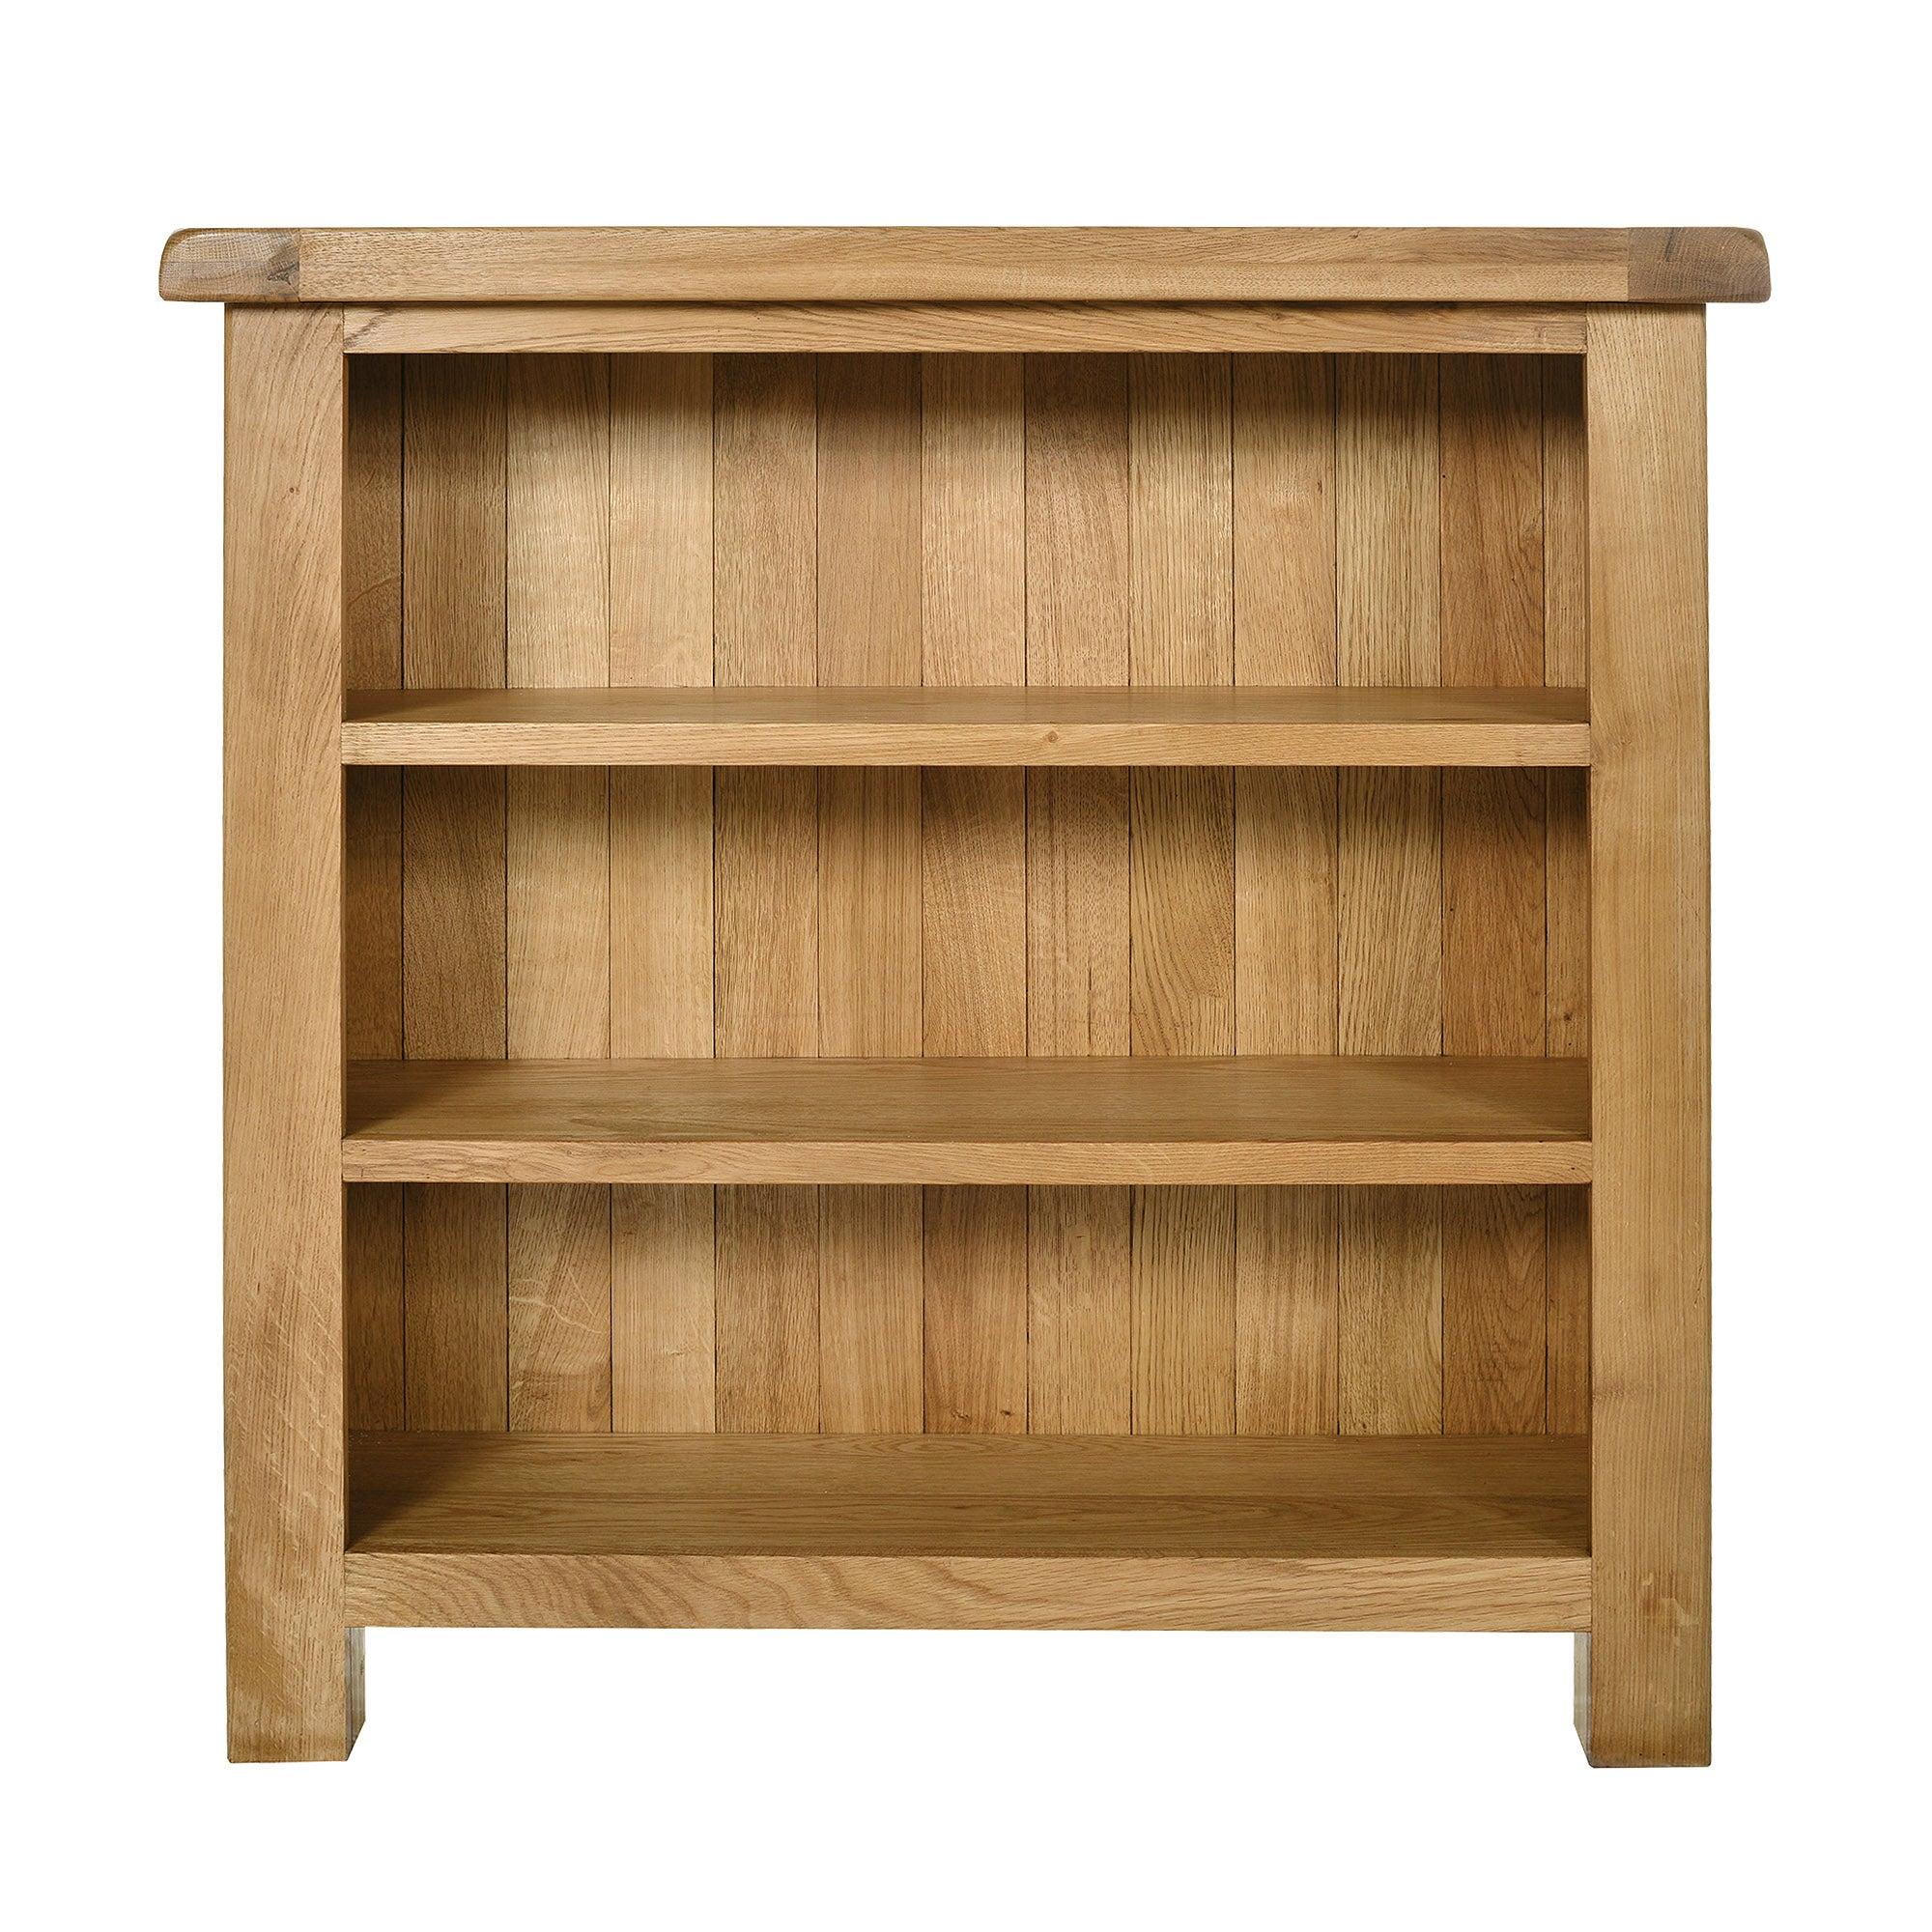 Aylesbury Oak Low Bookcase